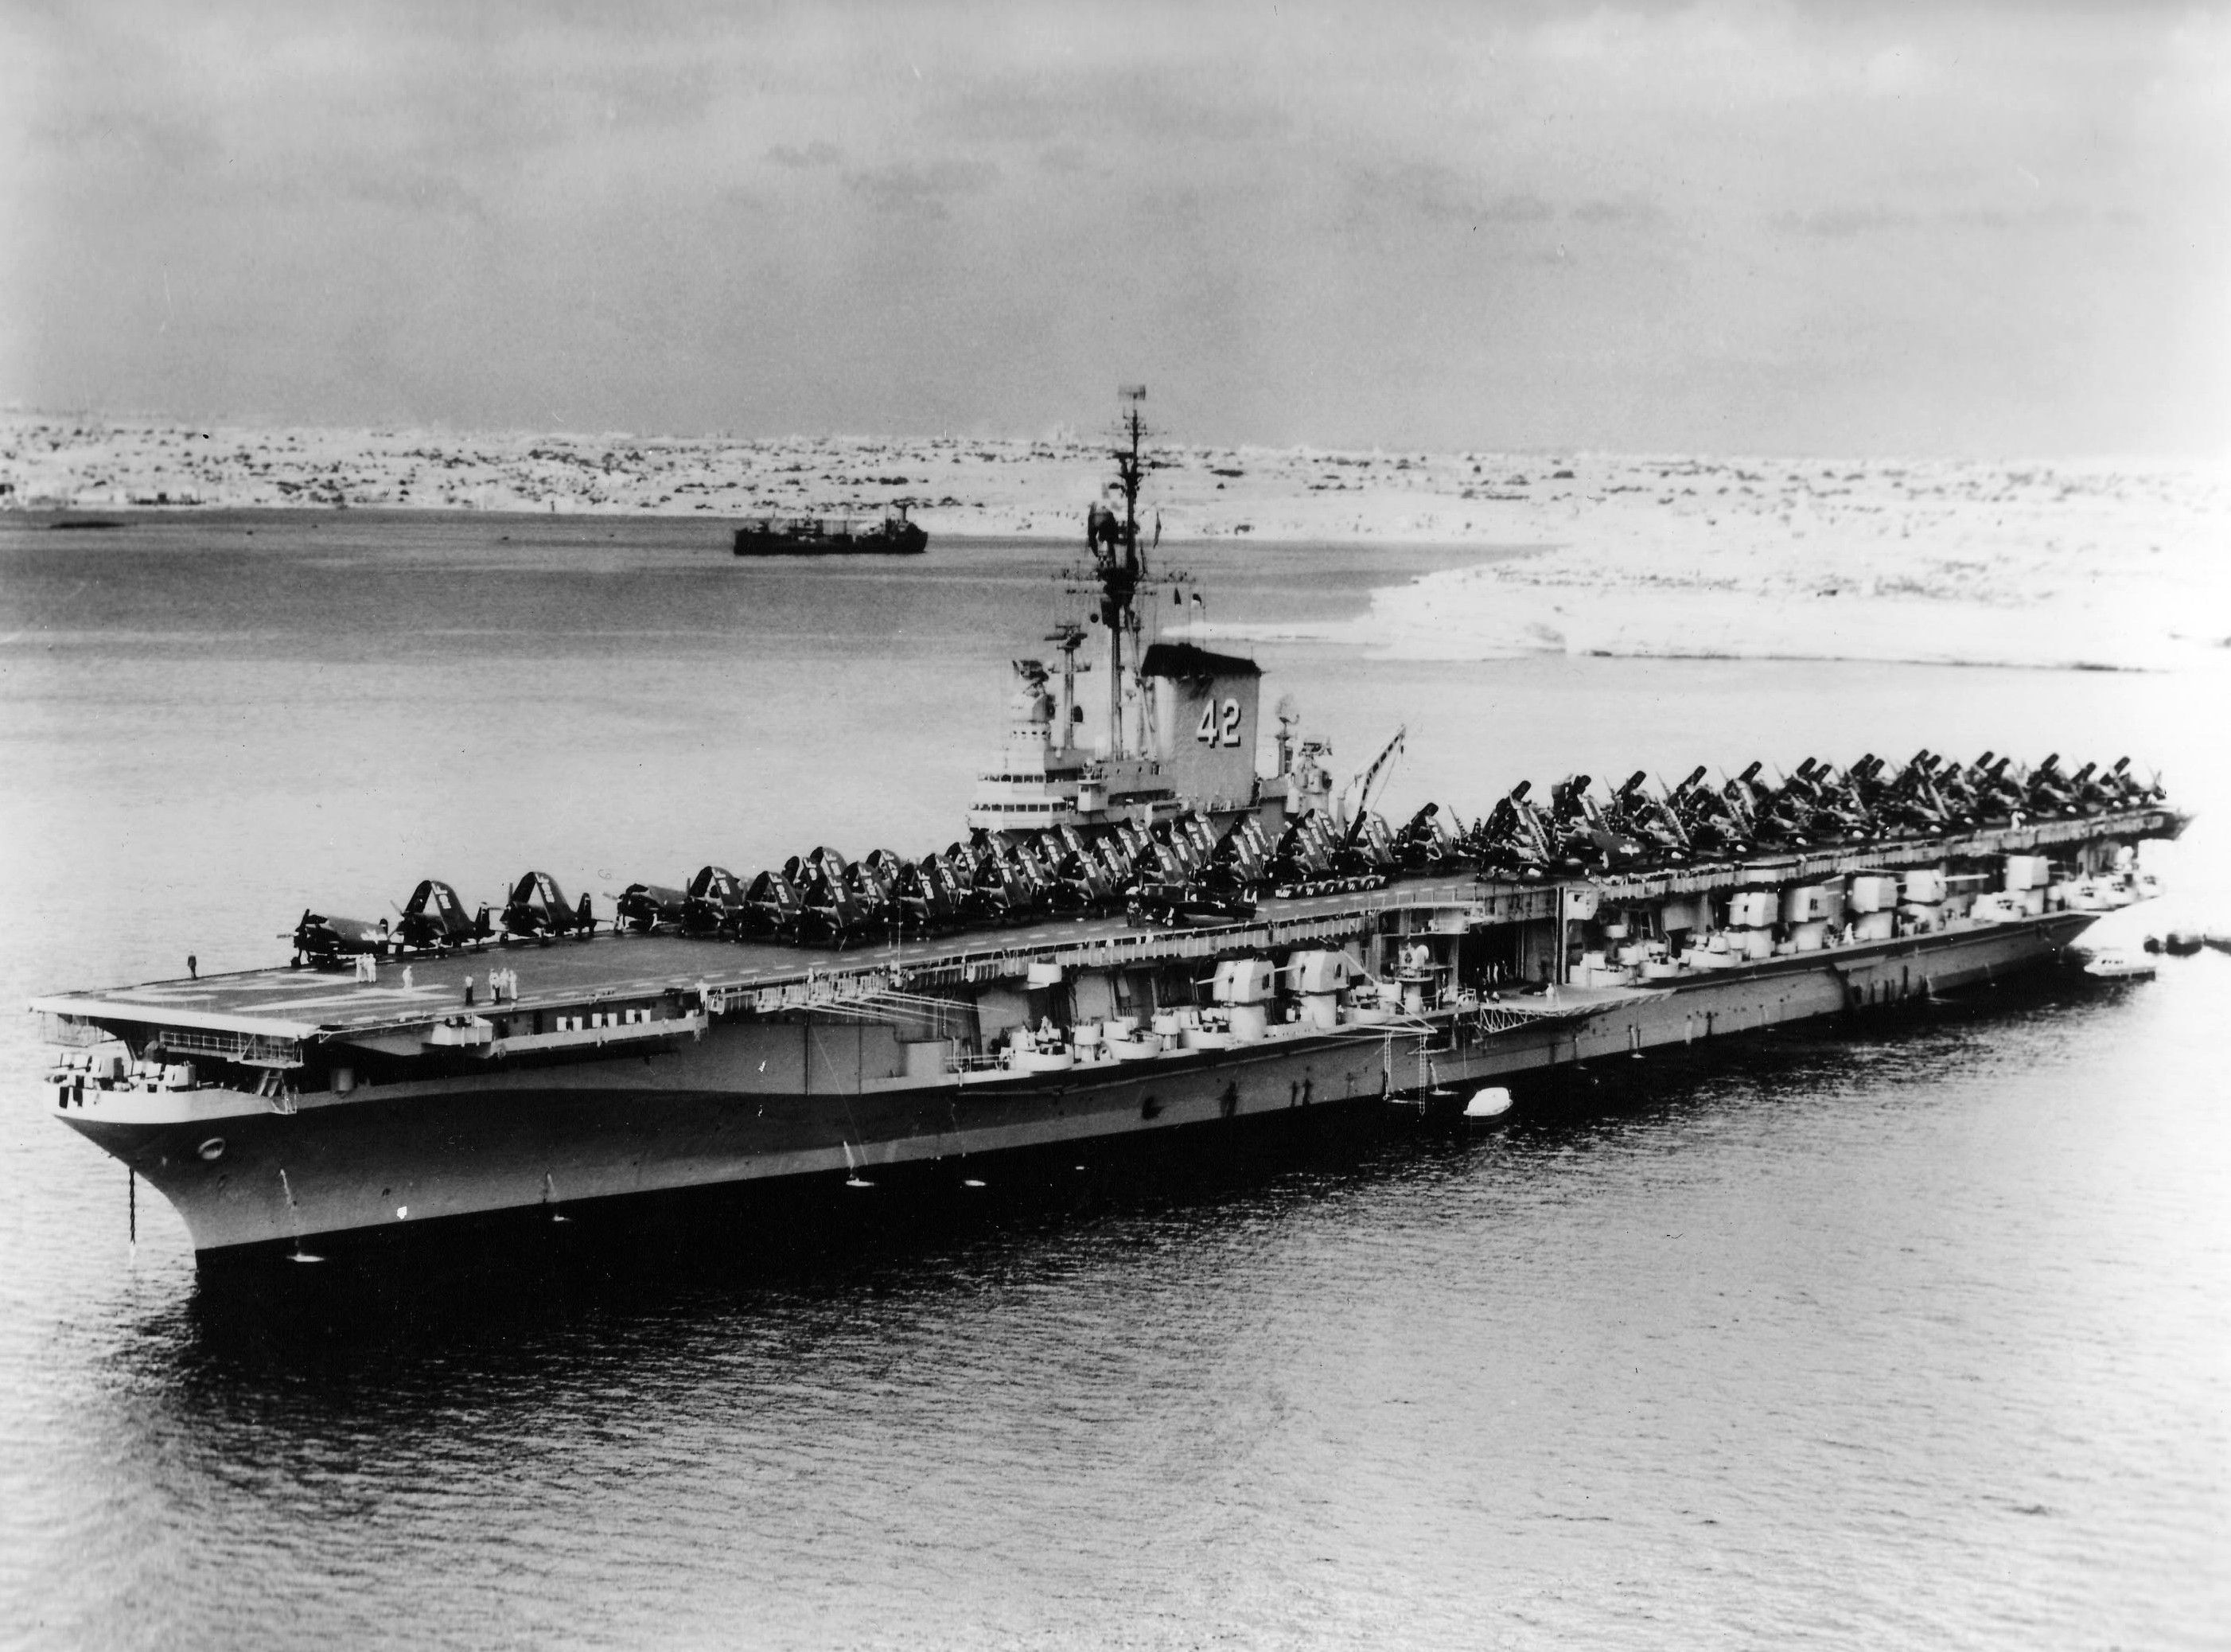 USS Franklin D. Roosevelt (CV-42) was the second of three ...